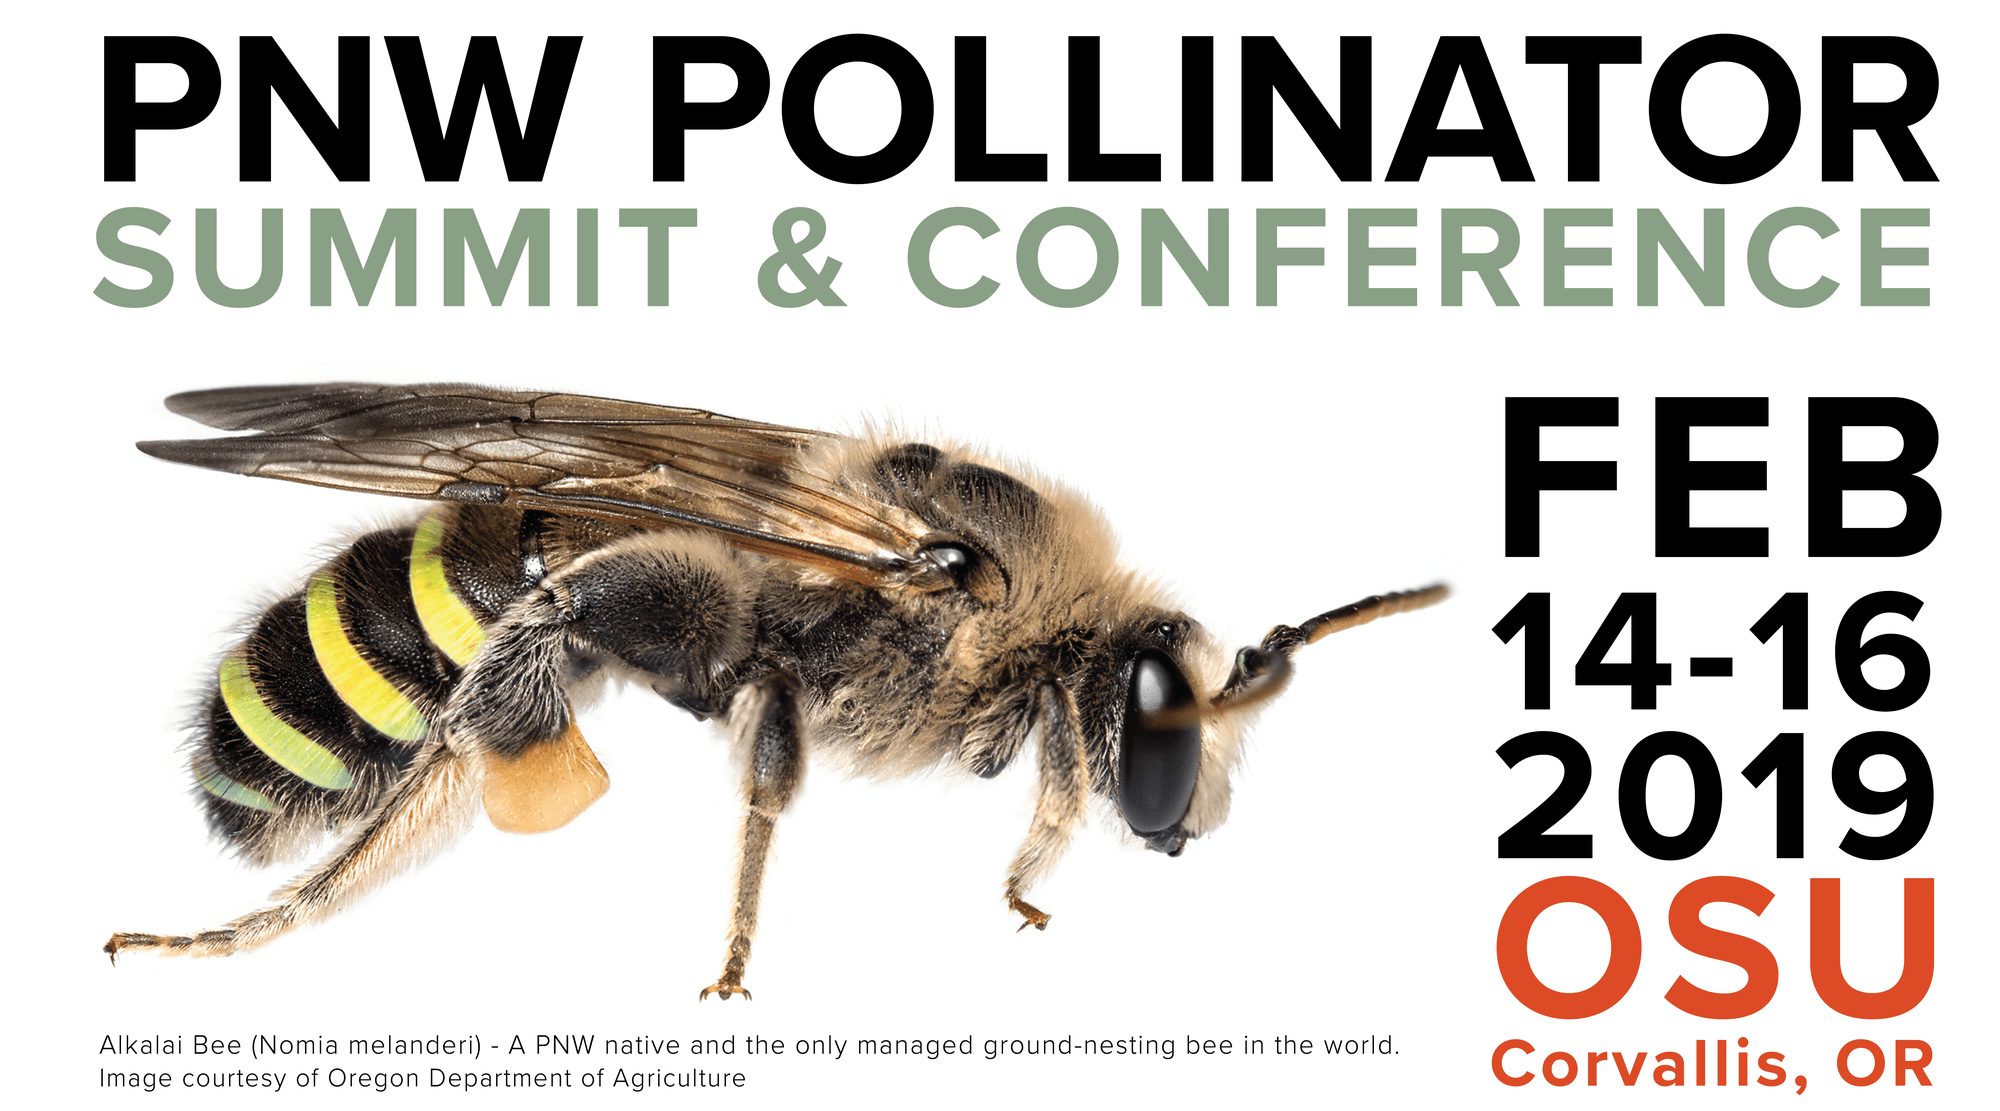 PNW Pollinator Summit & Conference. Feb 14-16 2019. Corvallis, OR